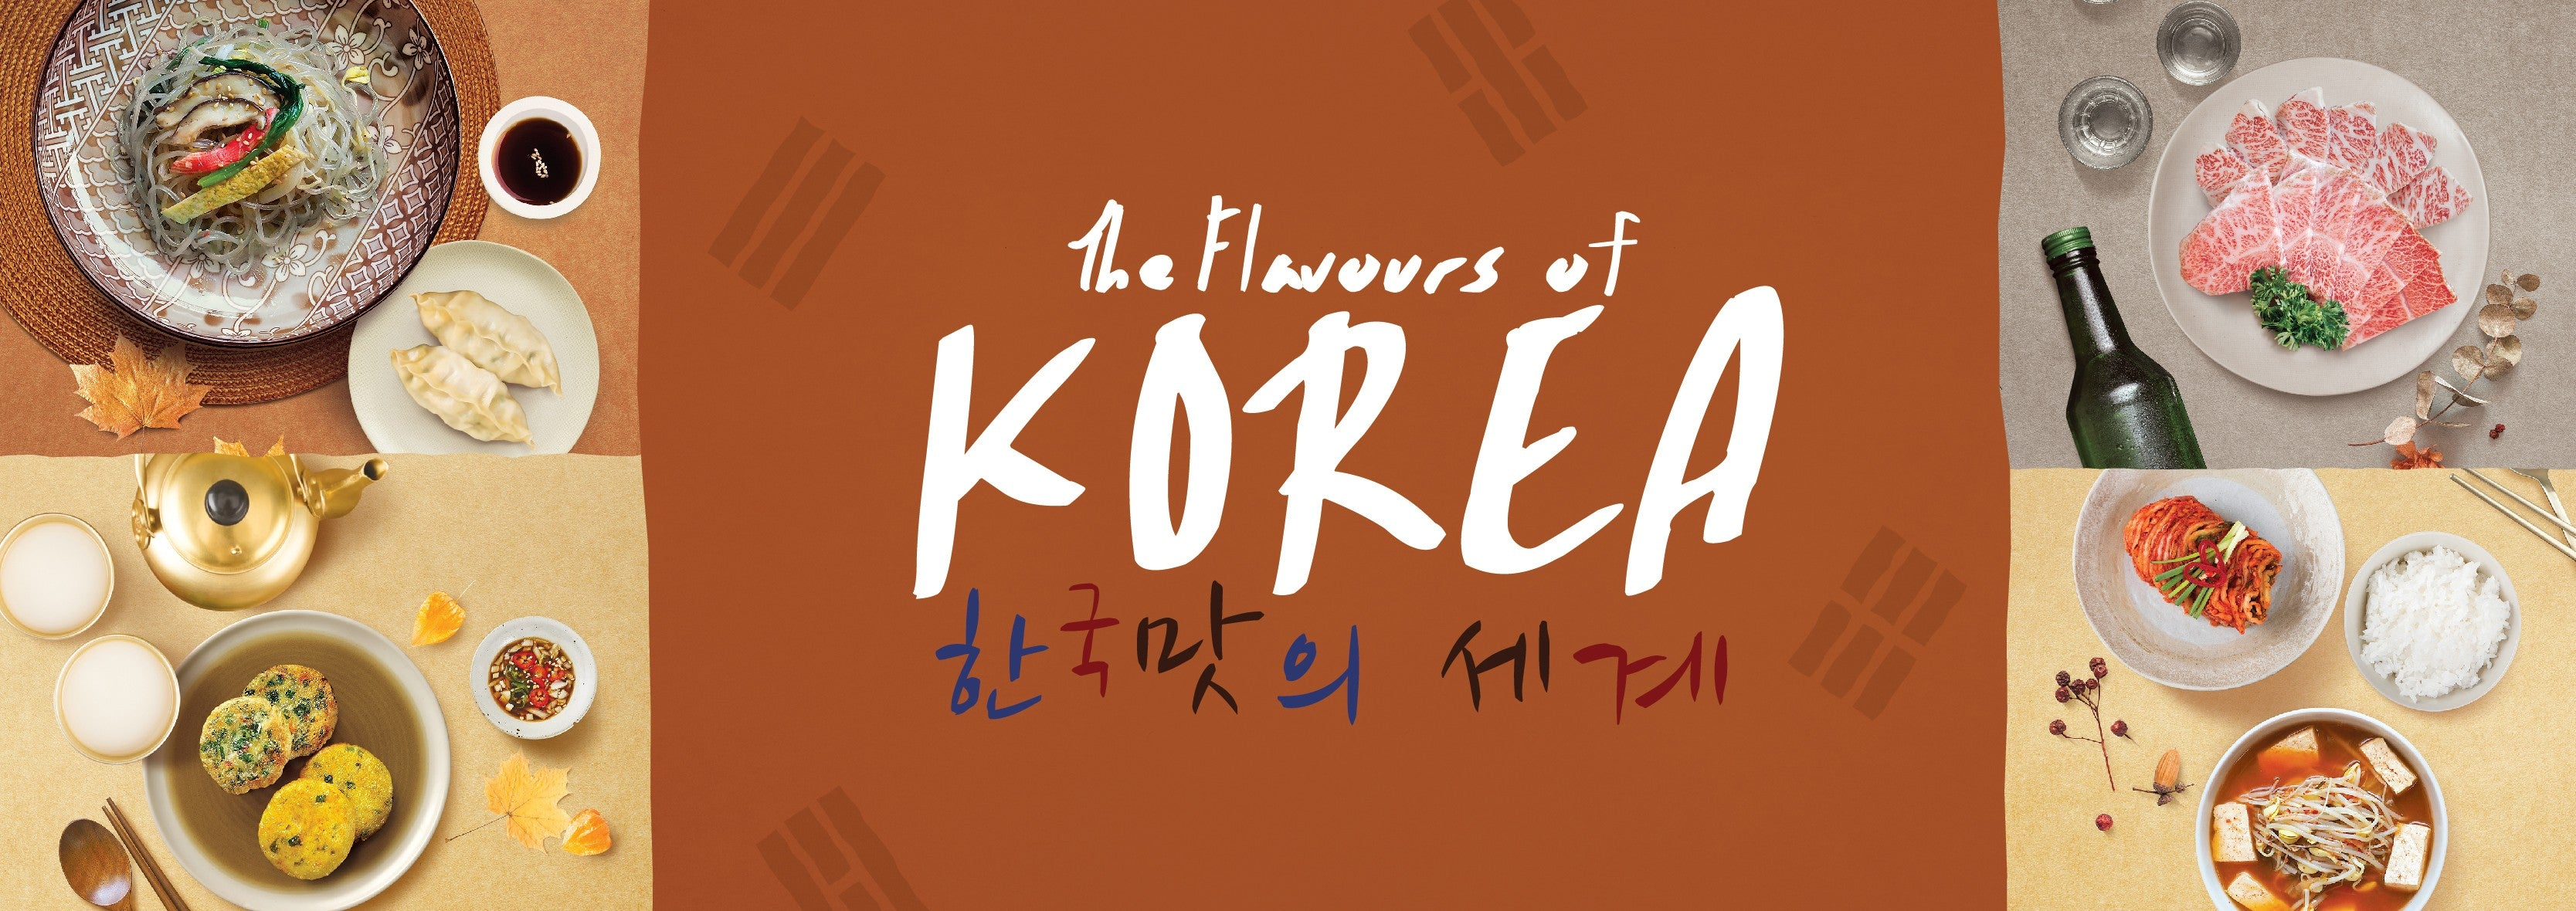 The Flavours of Korea